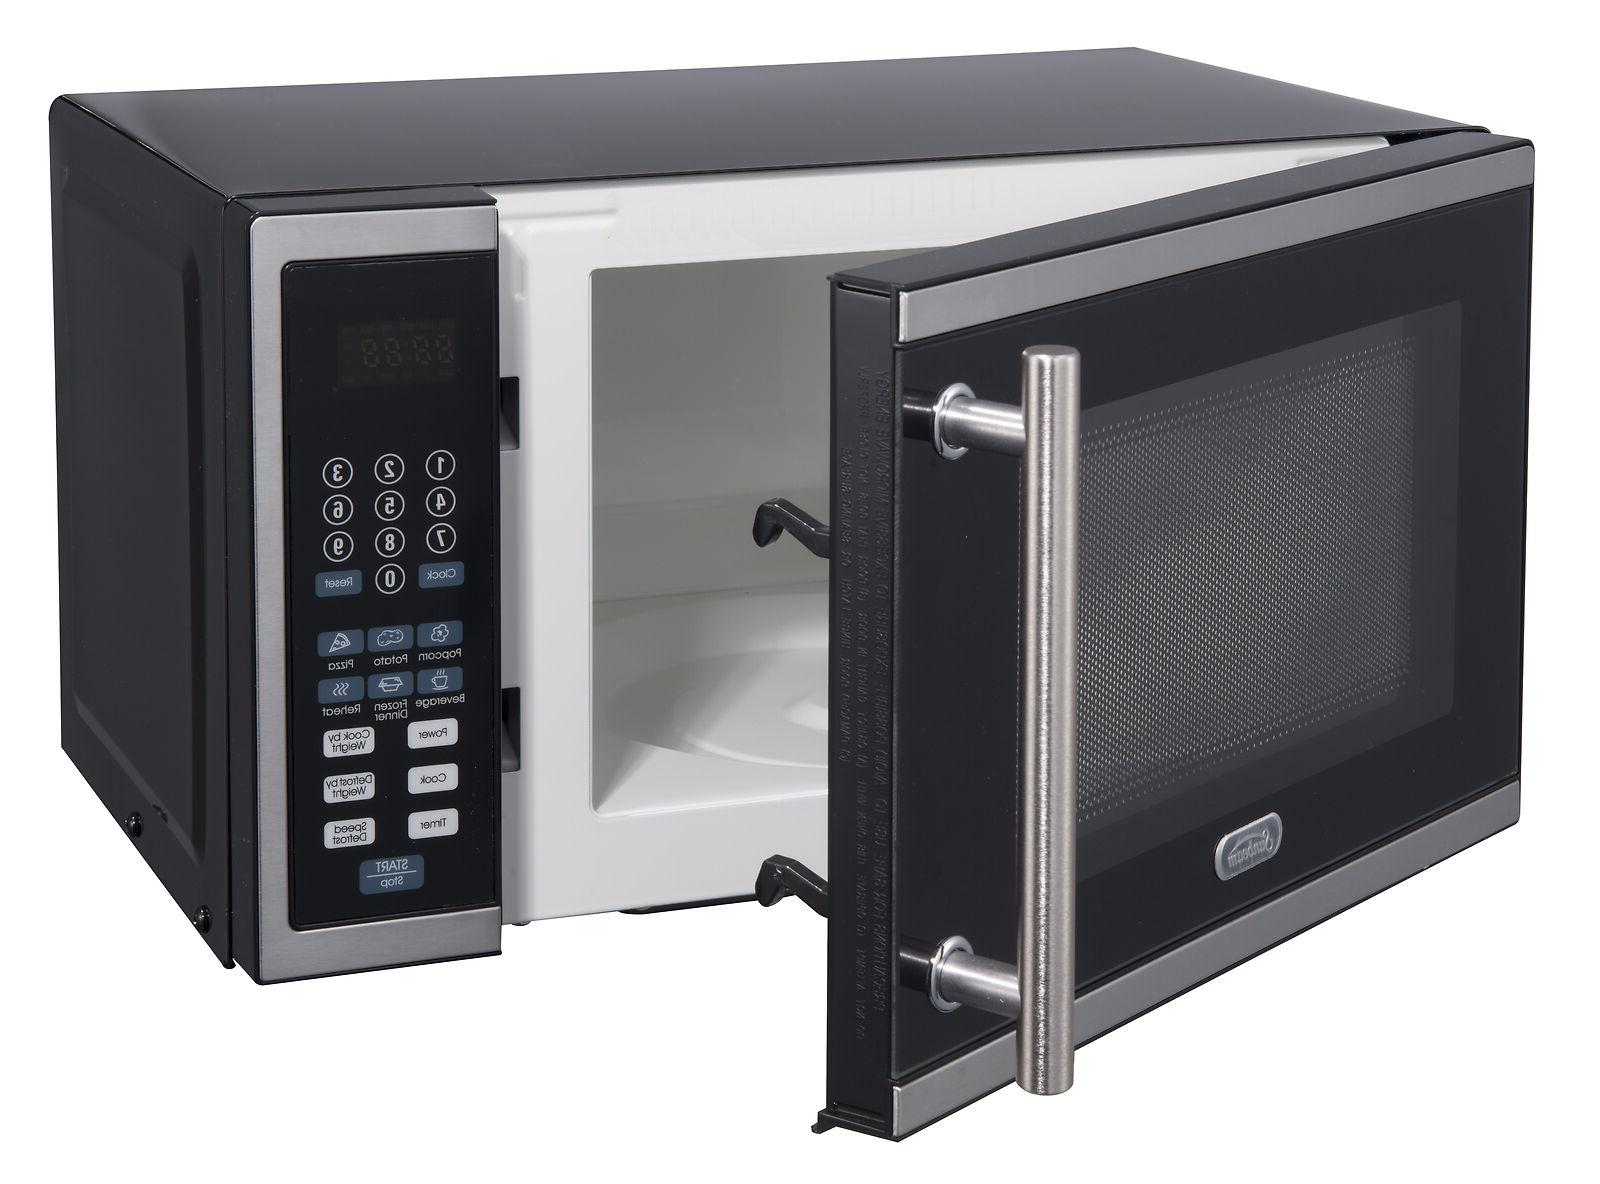 ** 20%** 0.7 Microwave, Stainless